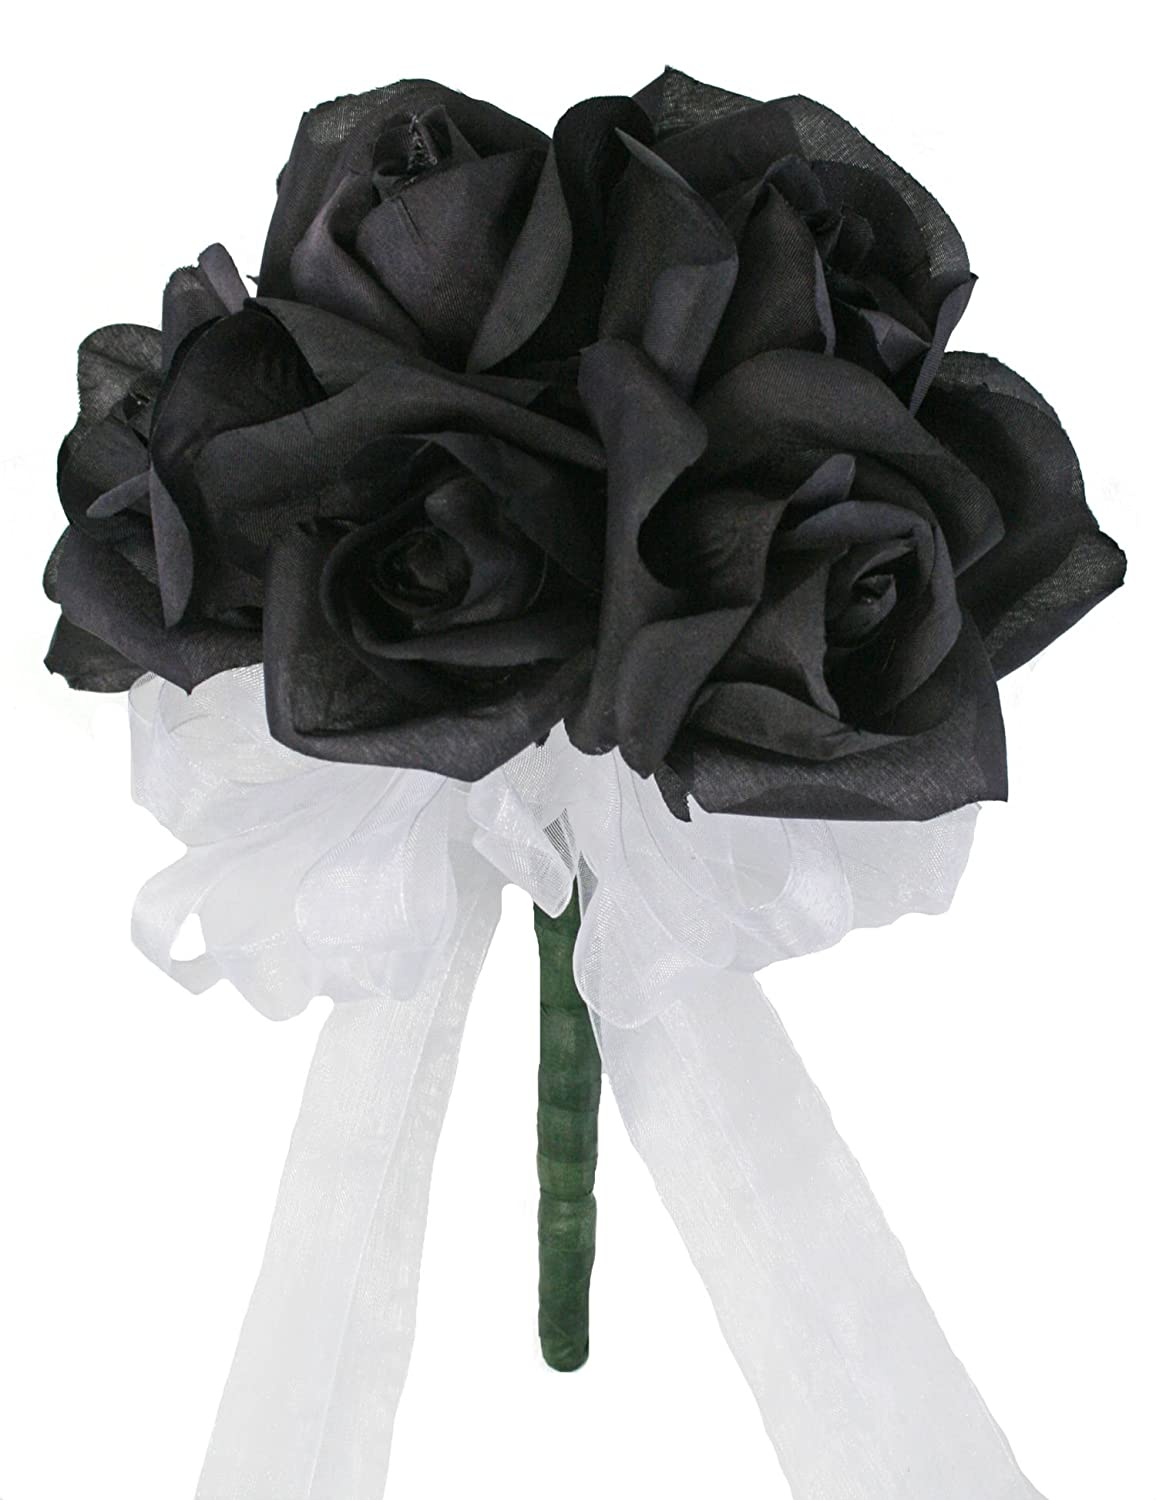 Amazon black silk rose toss bouquet bridal wedding bouquet amazon black silk rose toss bouquet bridal wedding bouquet home kitchen izmirmasajfo Choice Image